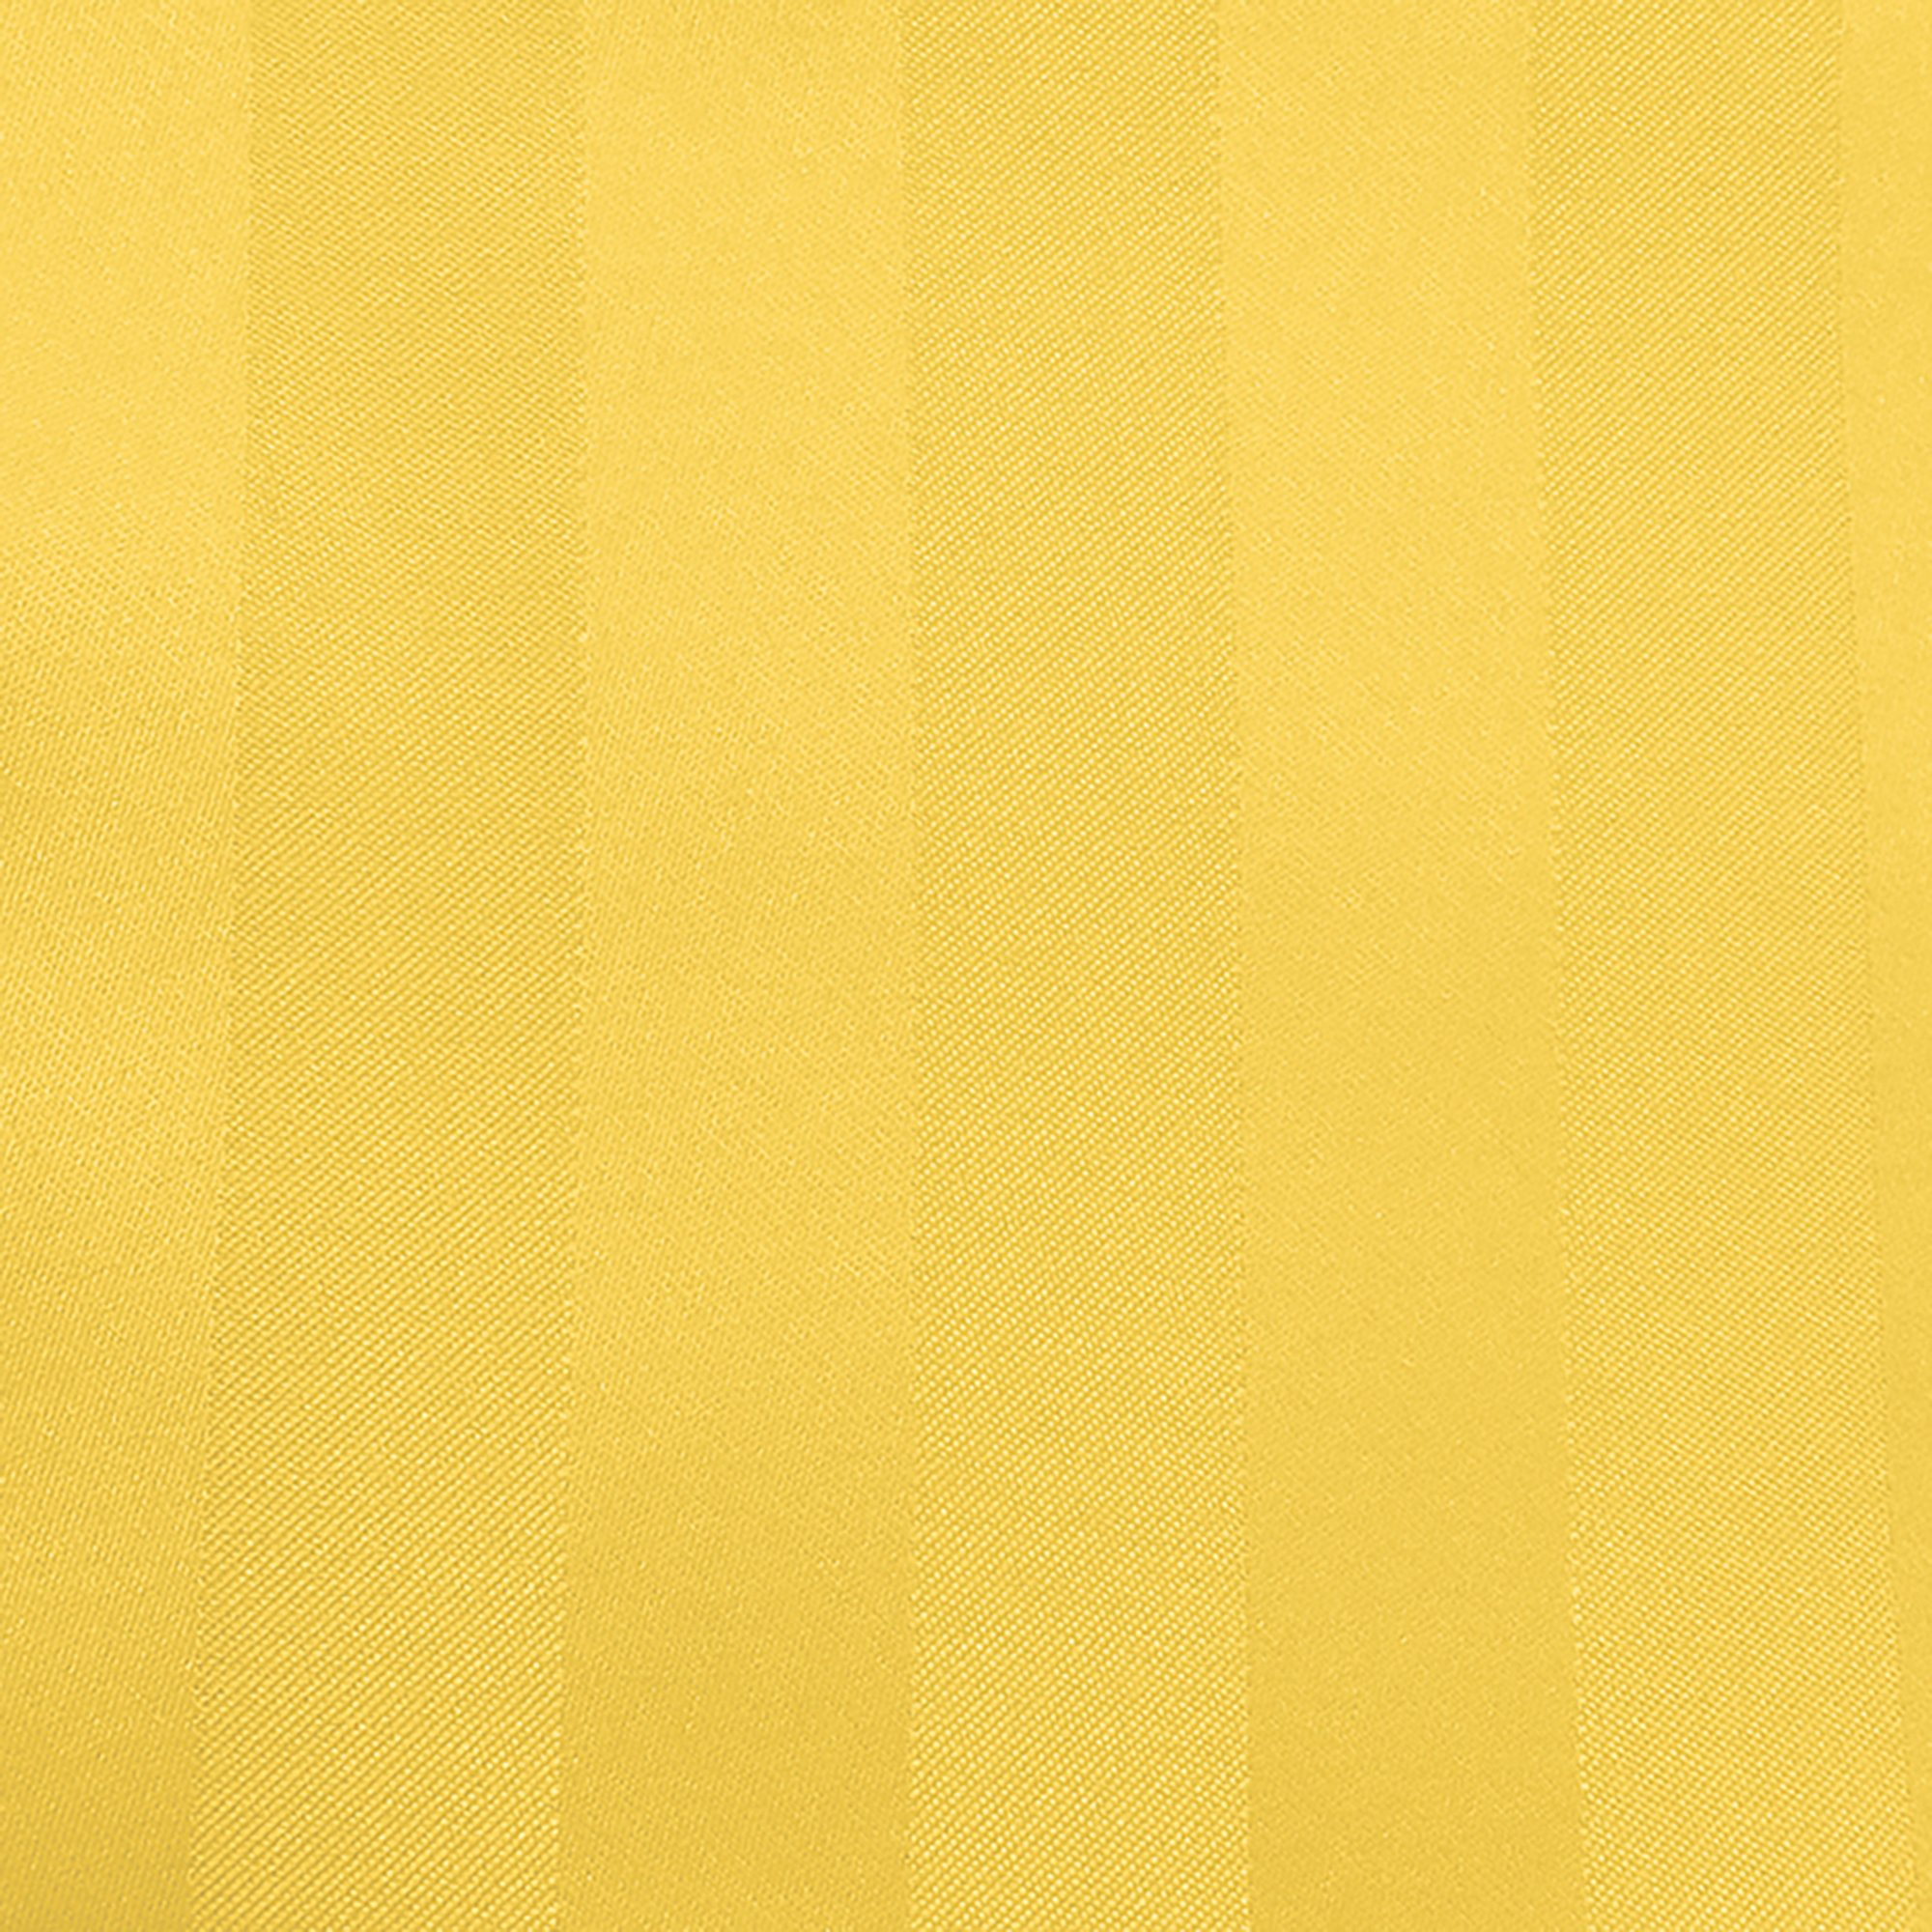 Ultimate Textile -2 Dozen- Satin-Stripe 10 x 10-Inch Cloth Cocktail Napkins - for Wedding and Catering, Hotel or Home Dining use, Goldenrod Yellow